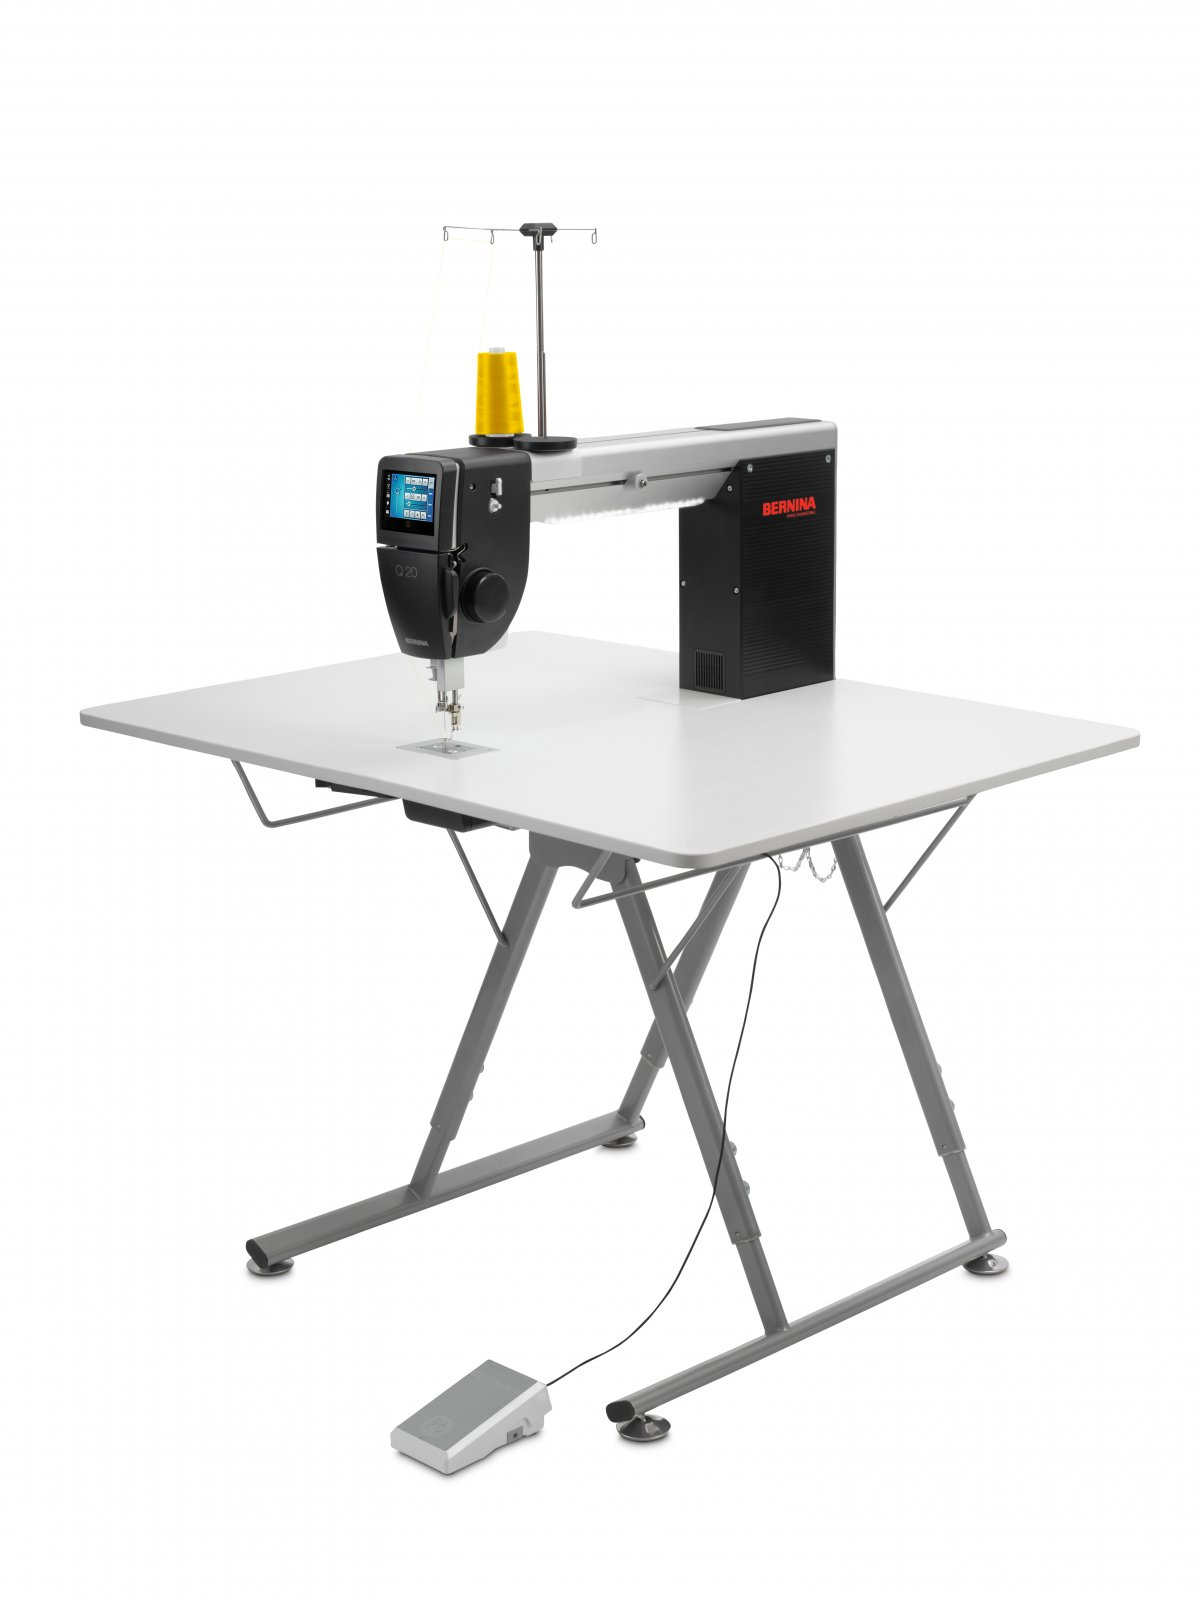 BERNINA Q20 (Demo) Long Arm Quilter with Folding Table (not adjustable)